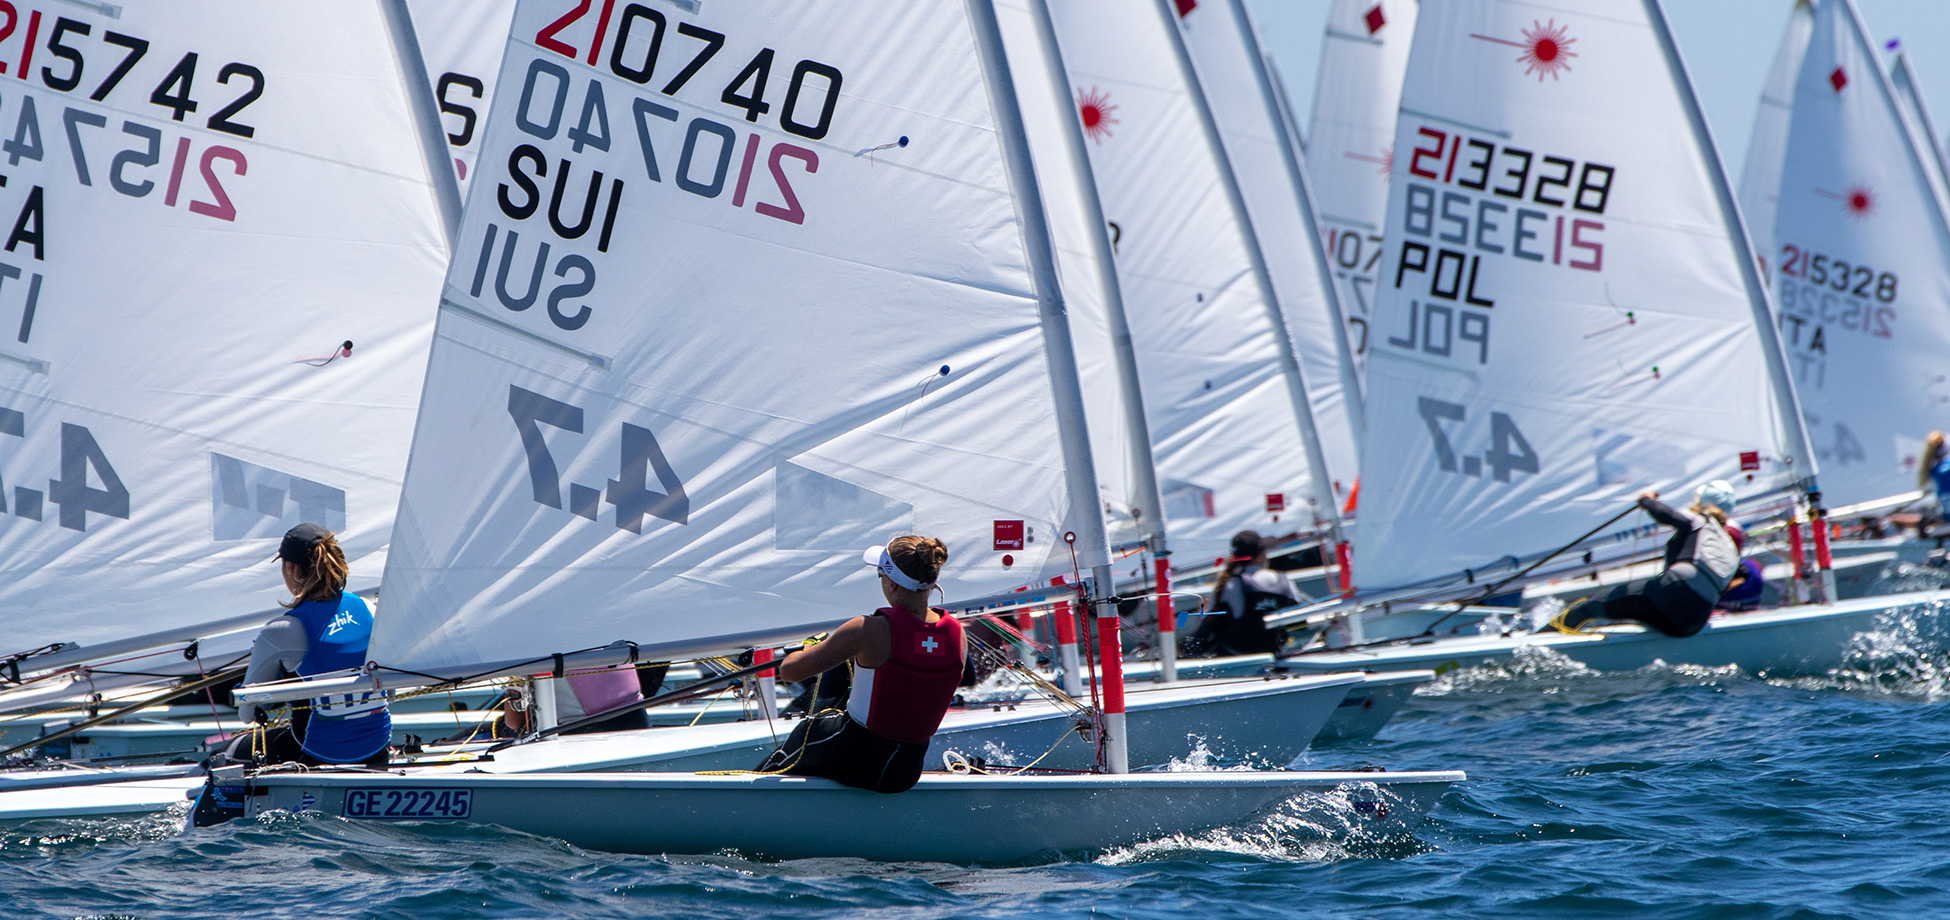 2020 Laser 4.7 Youth Europeans Race day 2